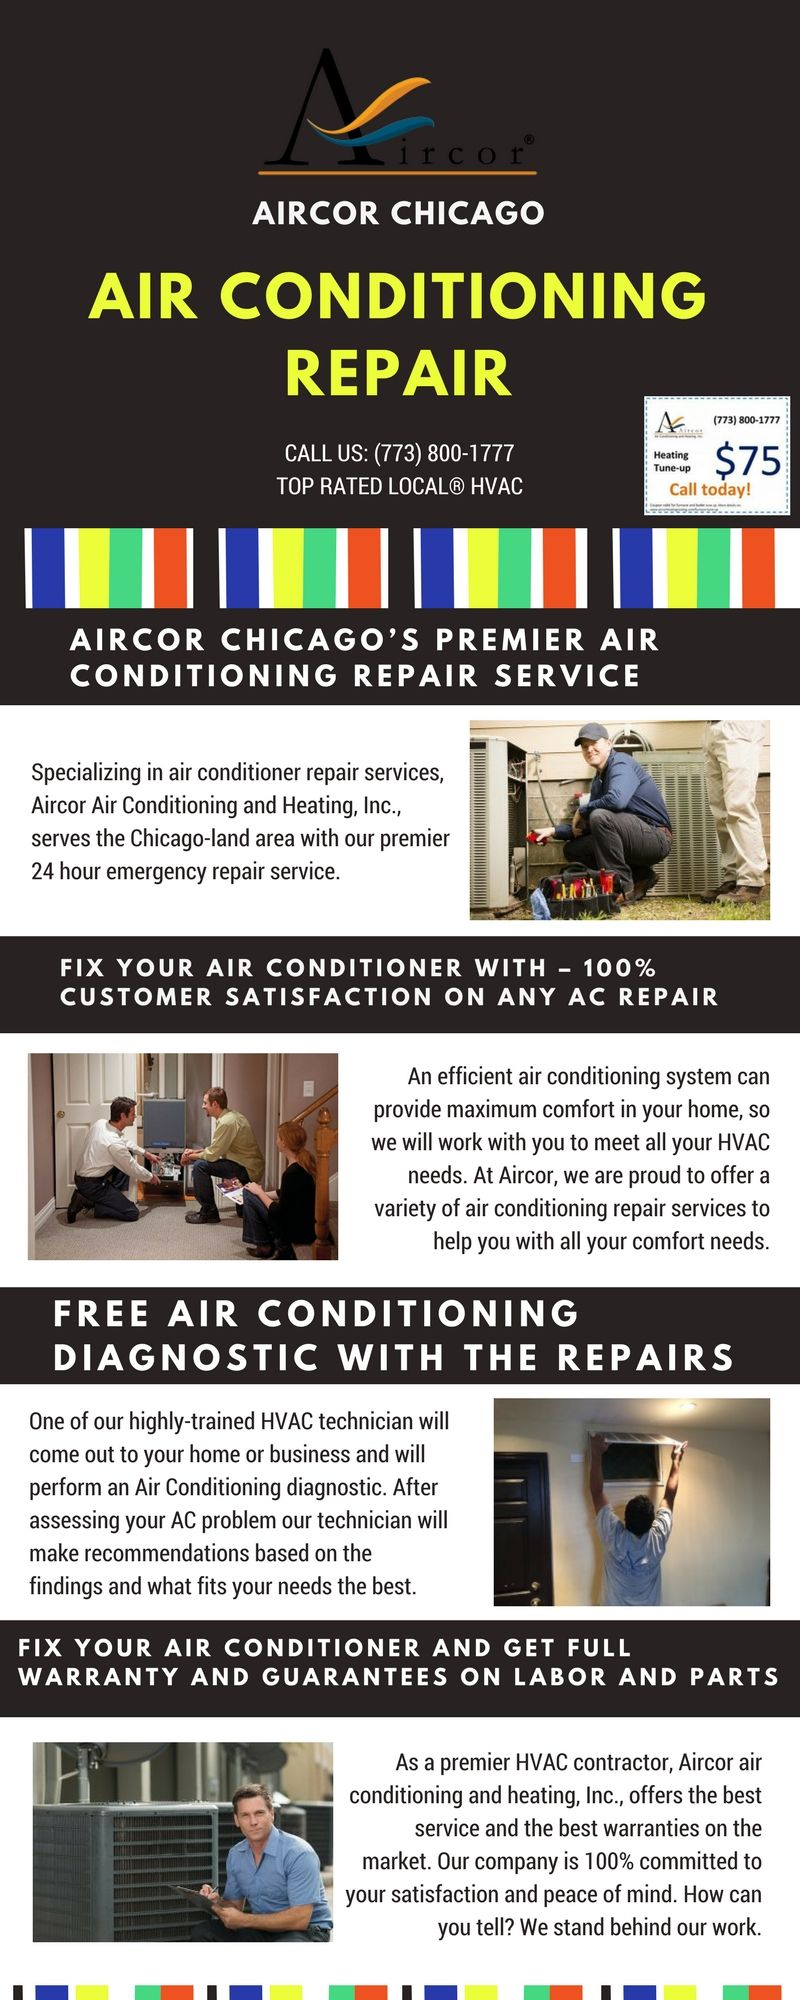 Aircor Air Conditioning And Heating Wants You To Enjoy The Comfort And Peace Of Air Conditioning Services Air Conditioner Repair Service Air Conditioner Repair